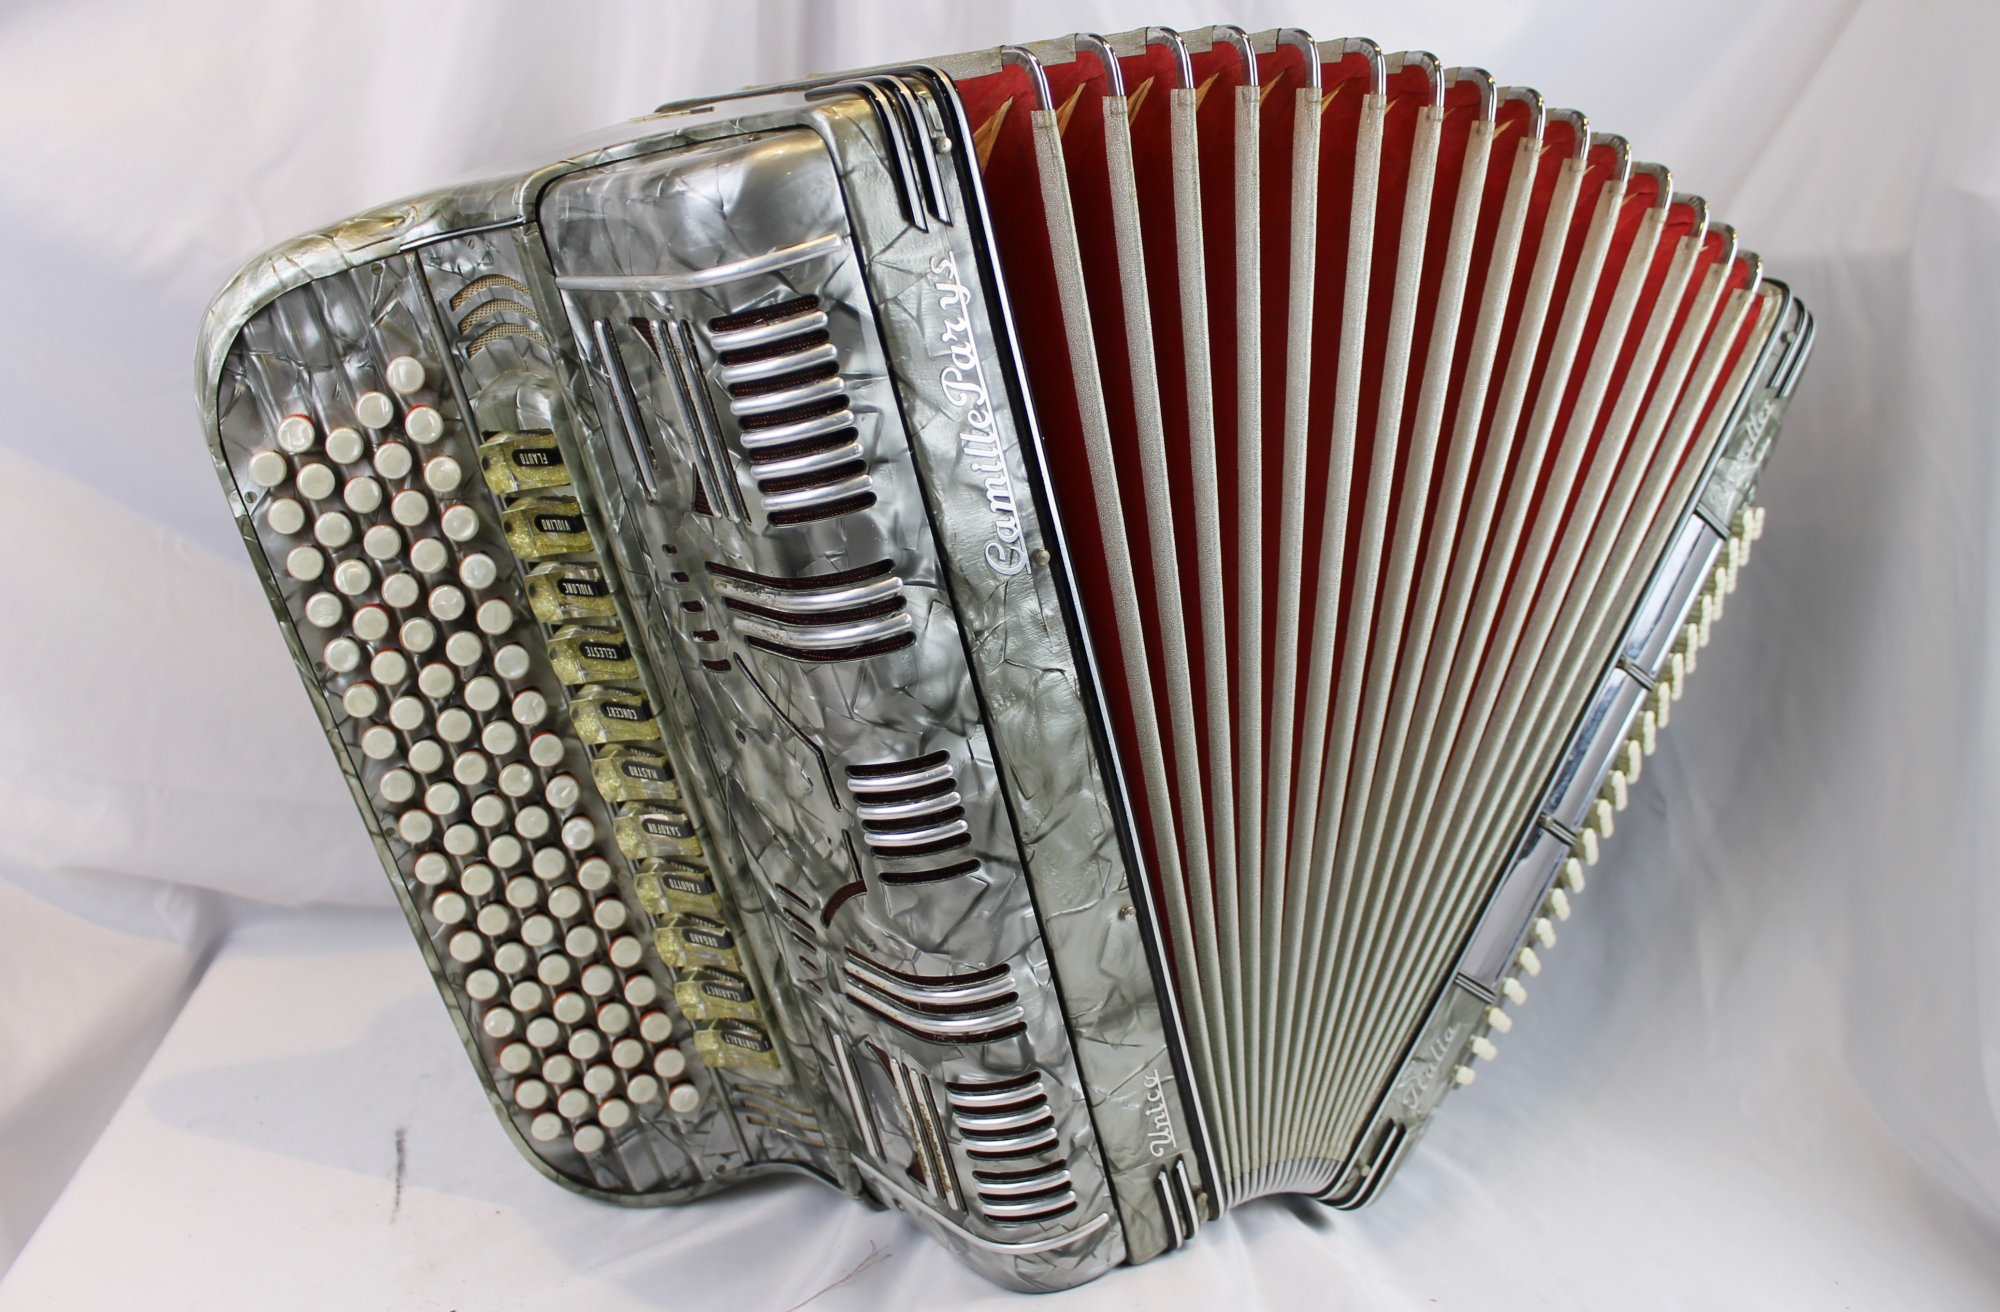 4078 - Silver Unico Camille Parys Bruxelles B System Chromatic Button Accordion LMMH 87 120 Belgian Bass